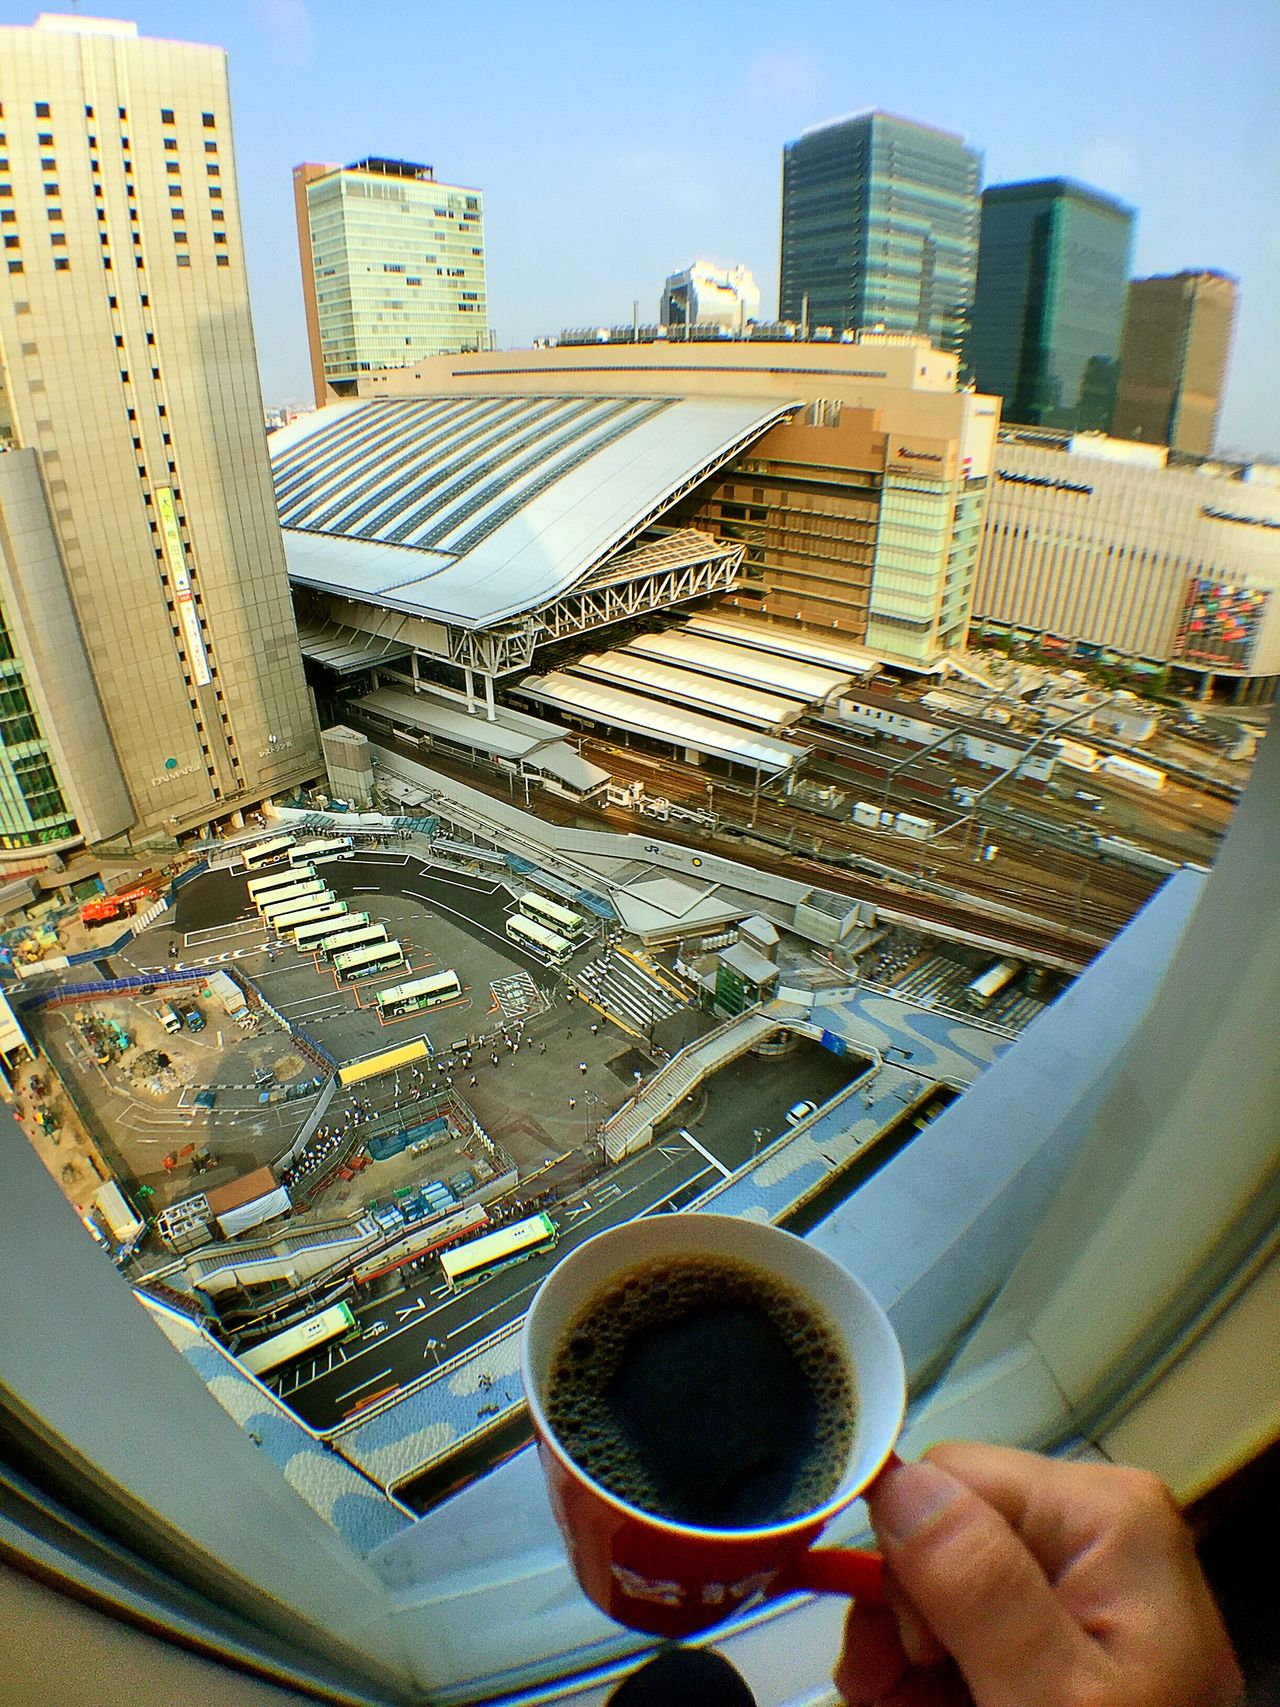 Beautiful stock photos of kaffee, Architecture, Black Coffee, Built Structure, Capital Cities